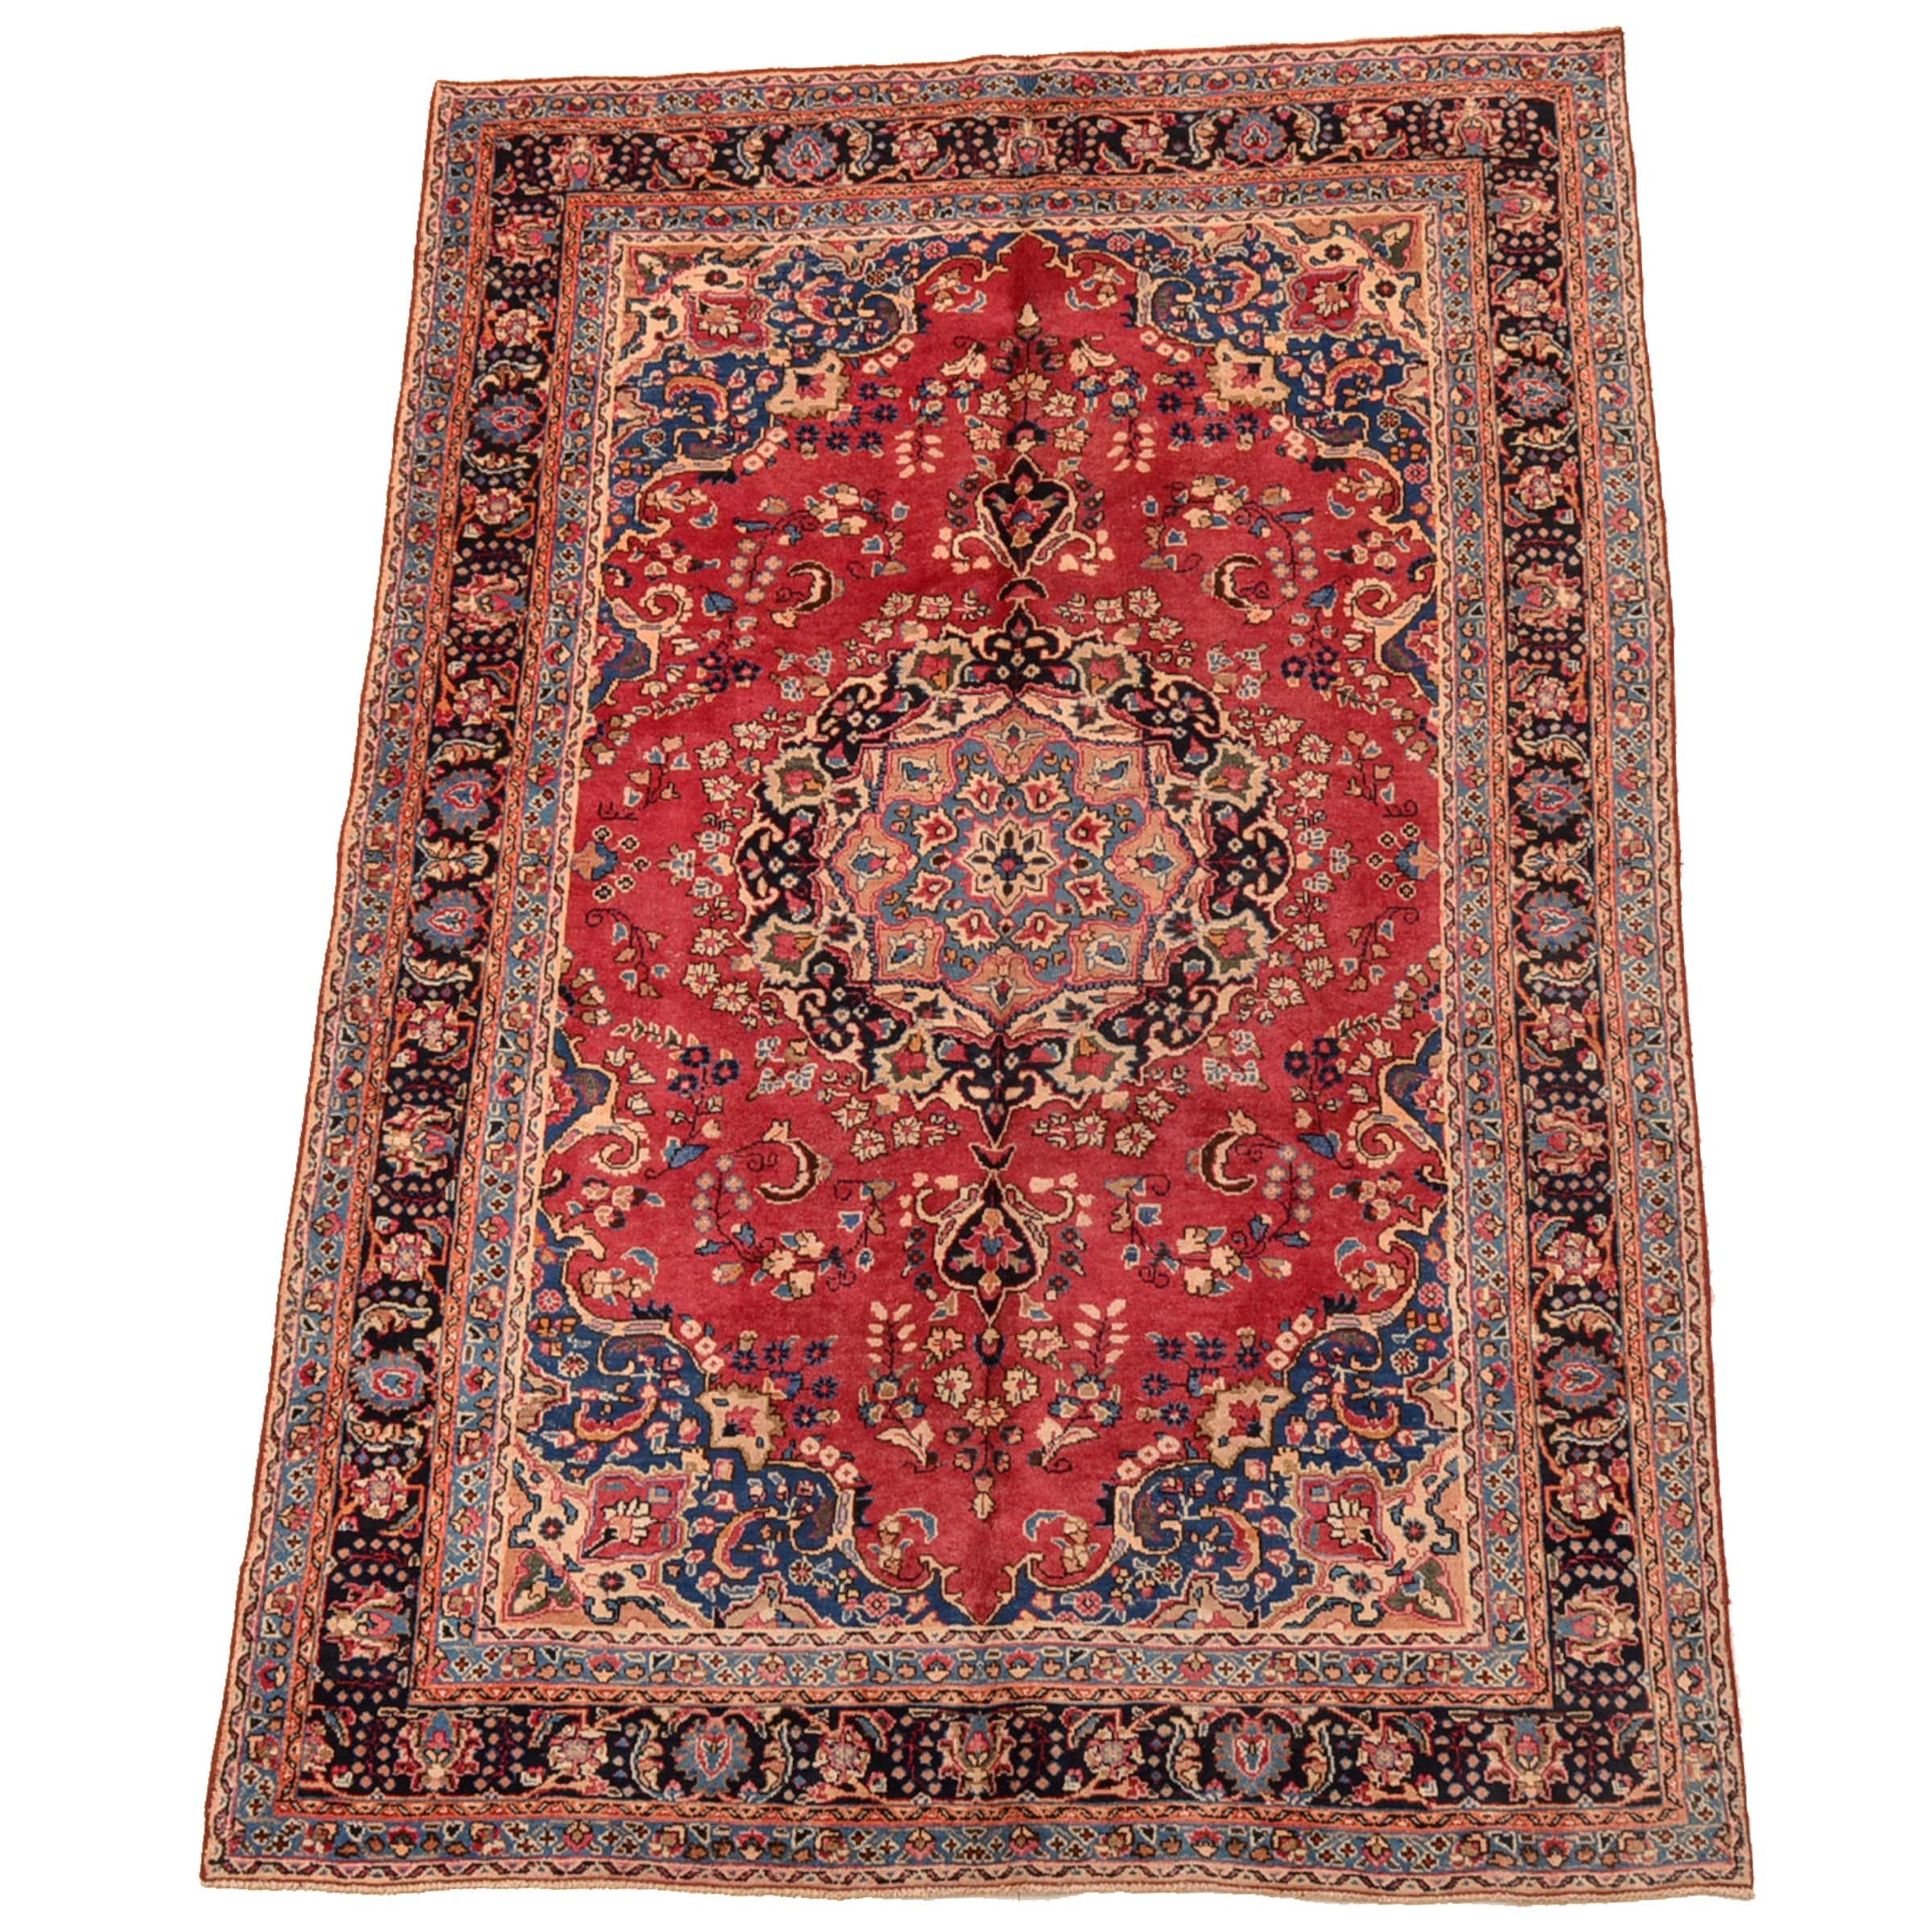 Hand-Knotted Persian Qum Style Area Rug